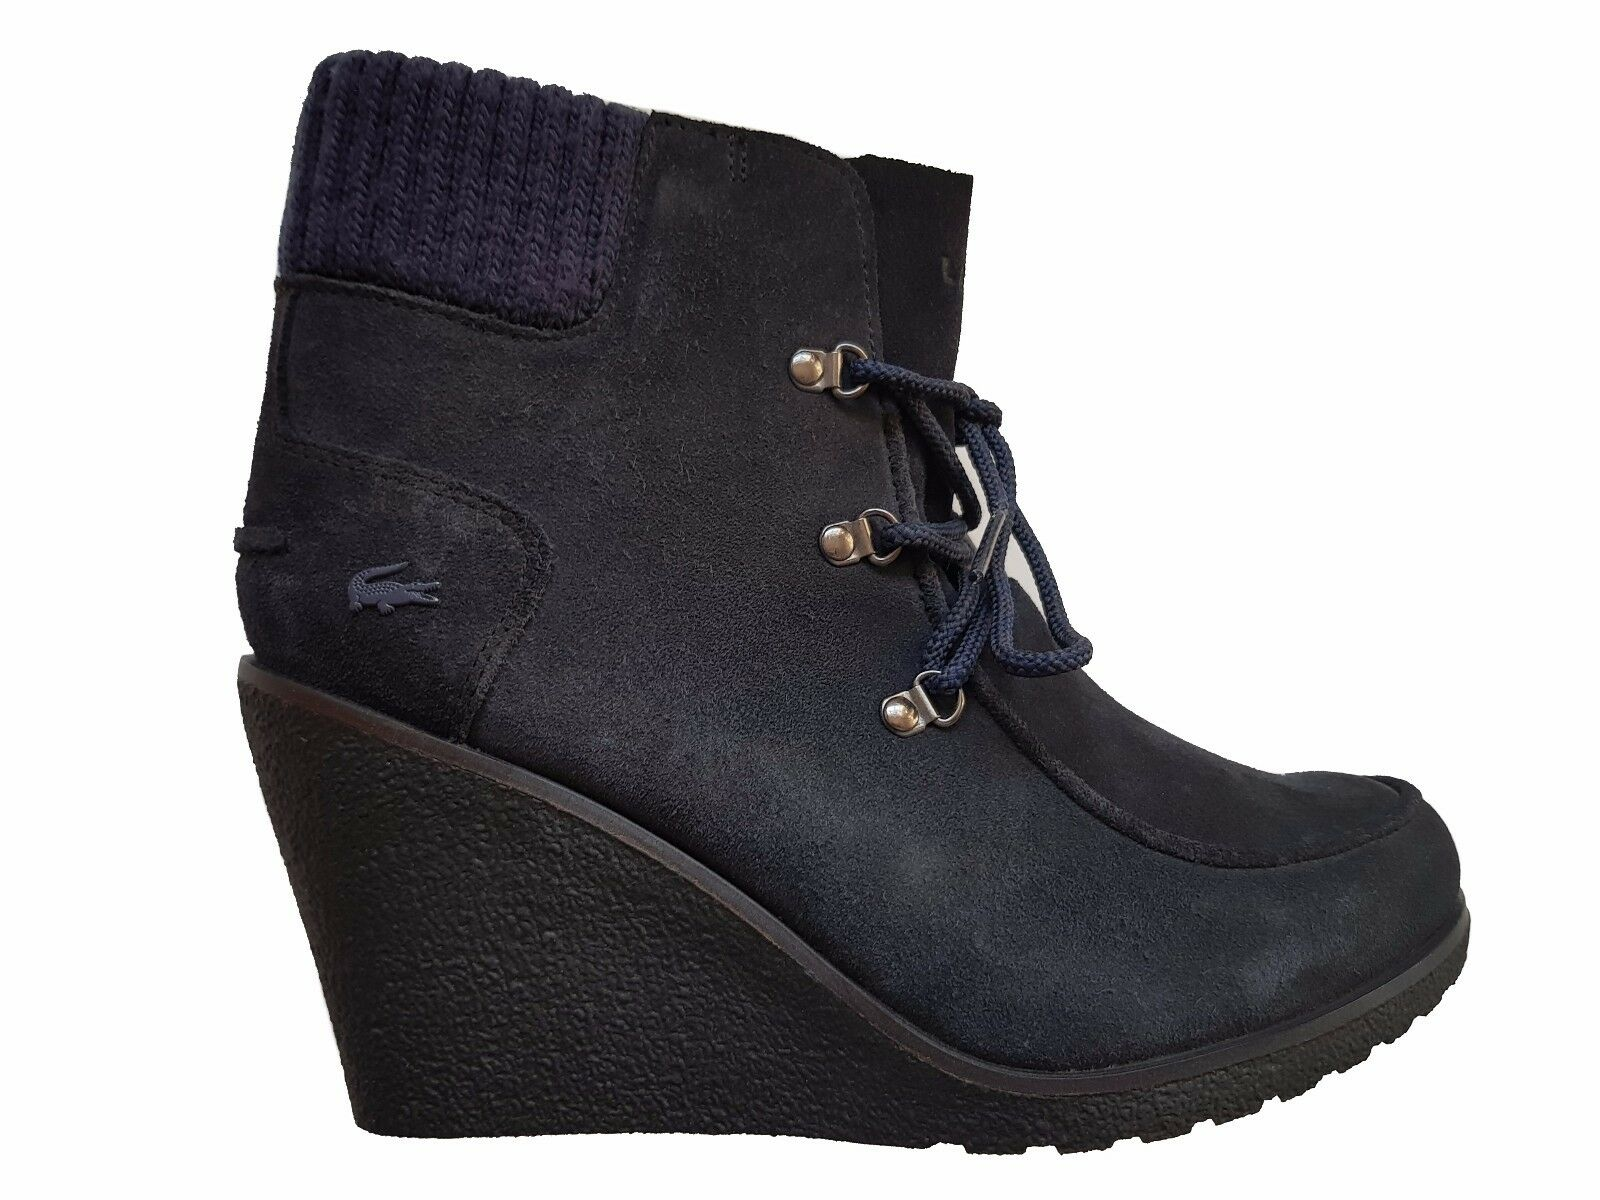 Lacoste Adalyn Wedge ankle Boots, Suede, Dark bluee - Multi sizes from 3.5UK- 8UK